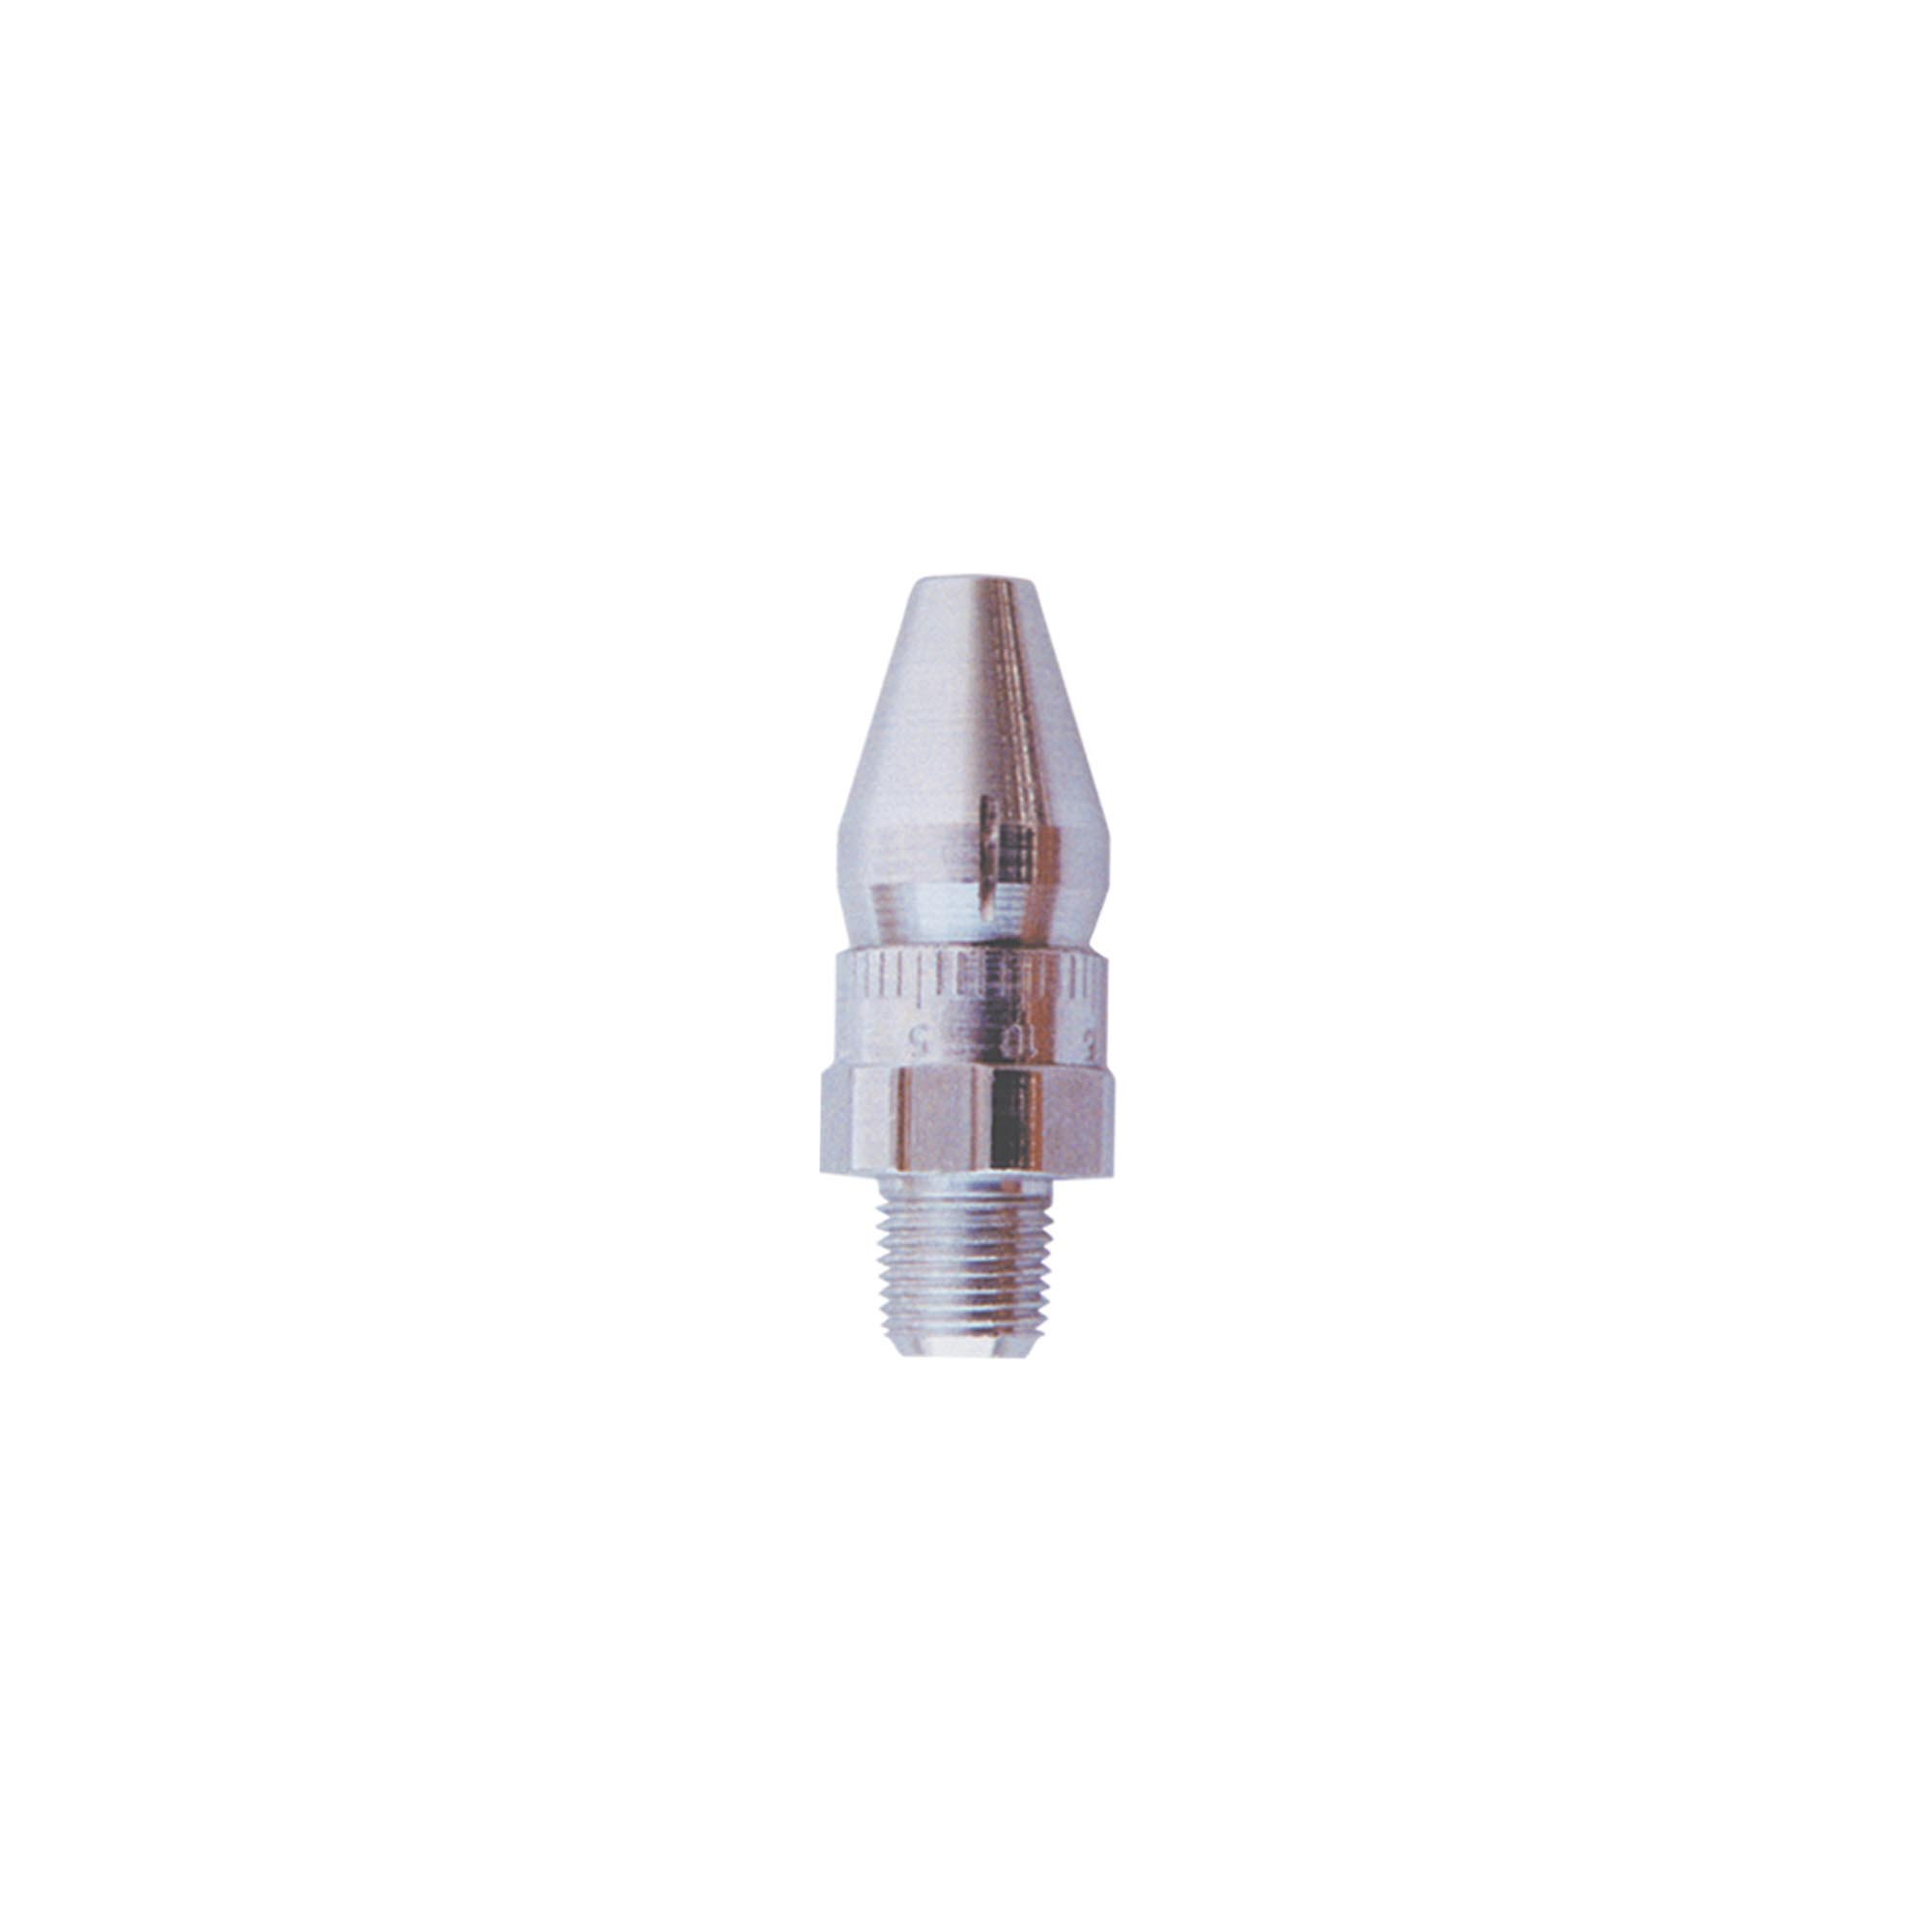 Model 1009 Adjustable Air Nozzle is available in aluminum and Type 303SS materials